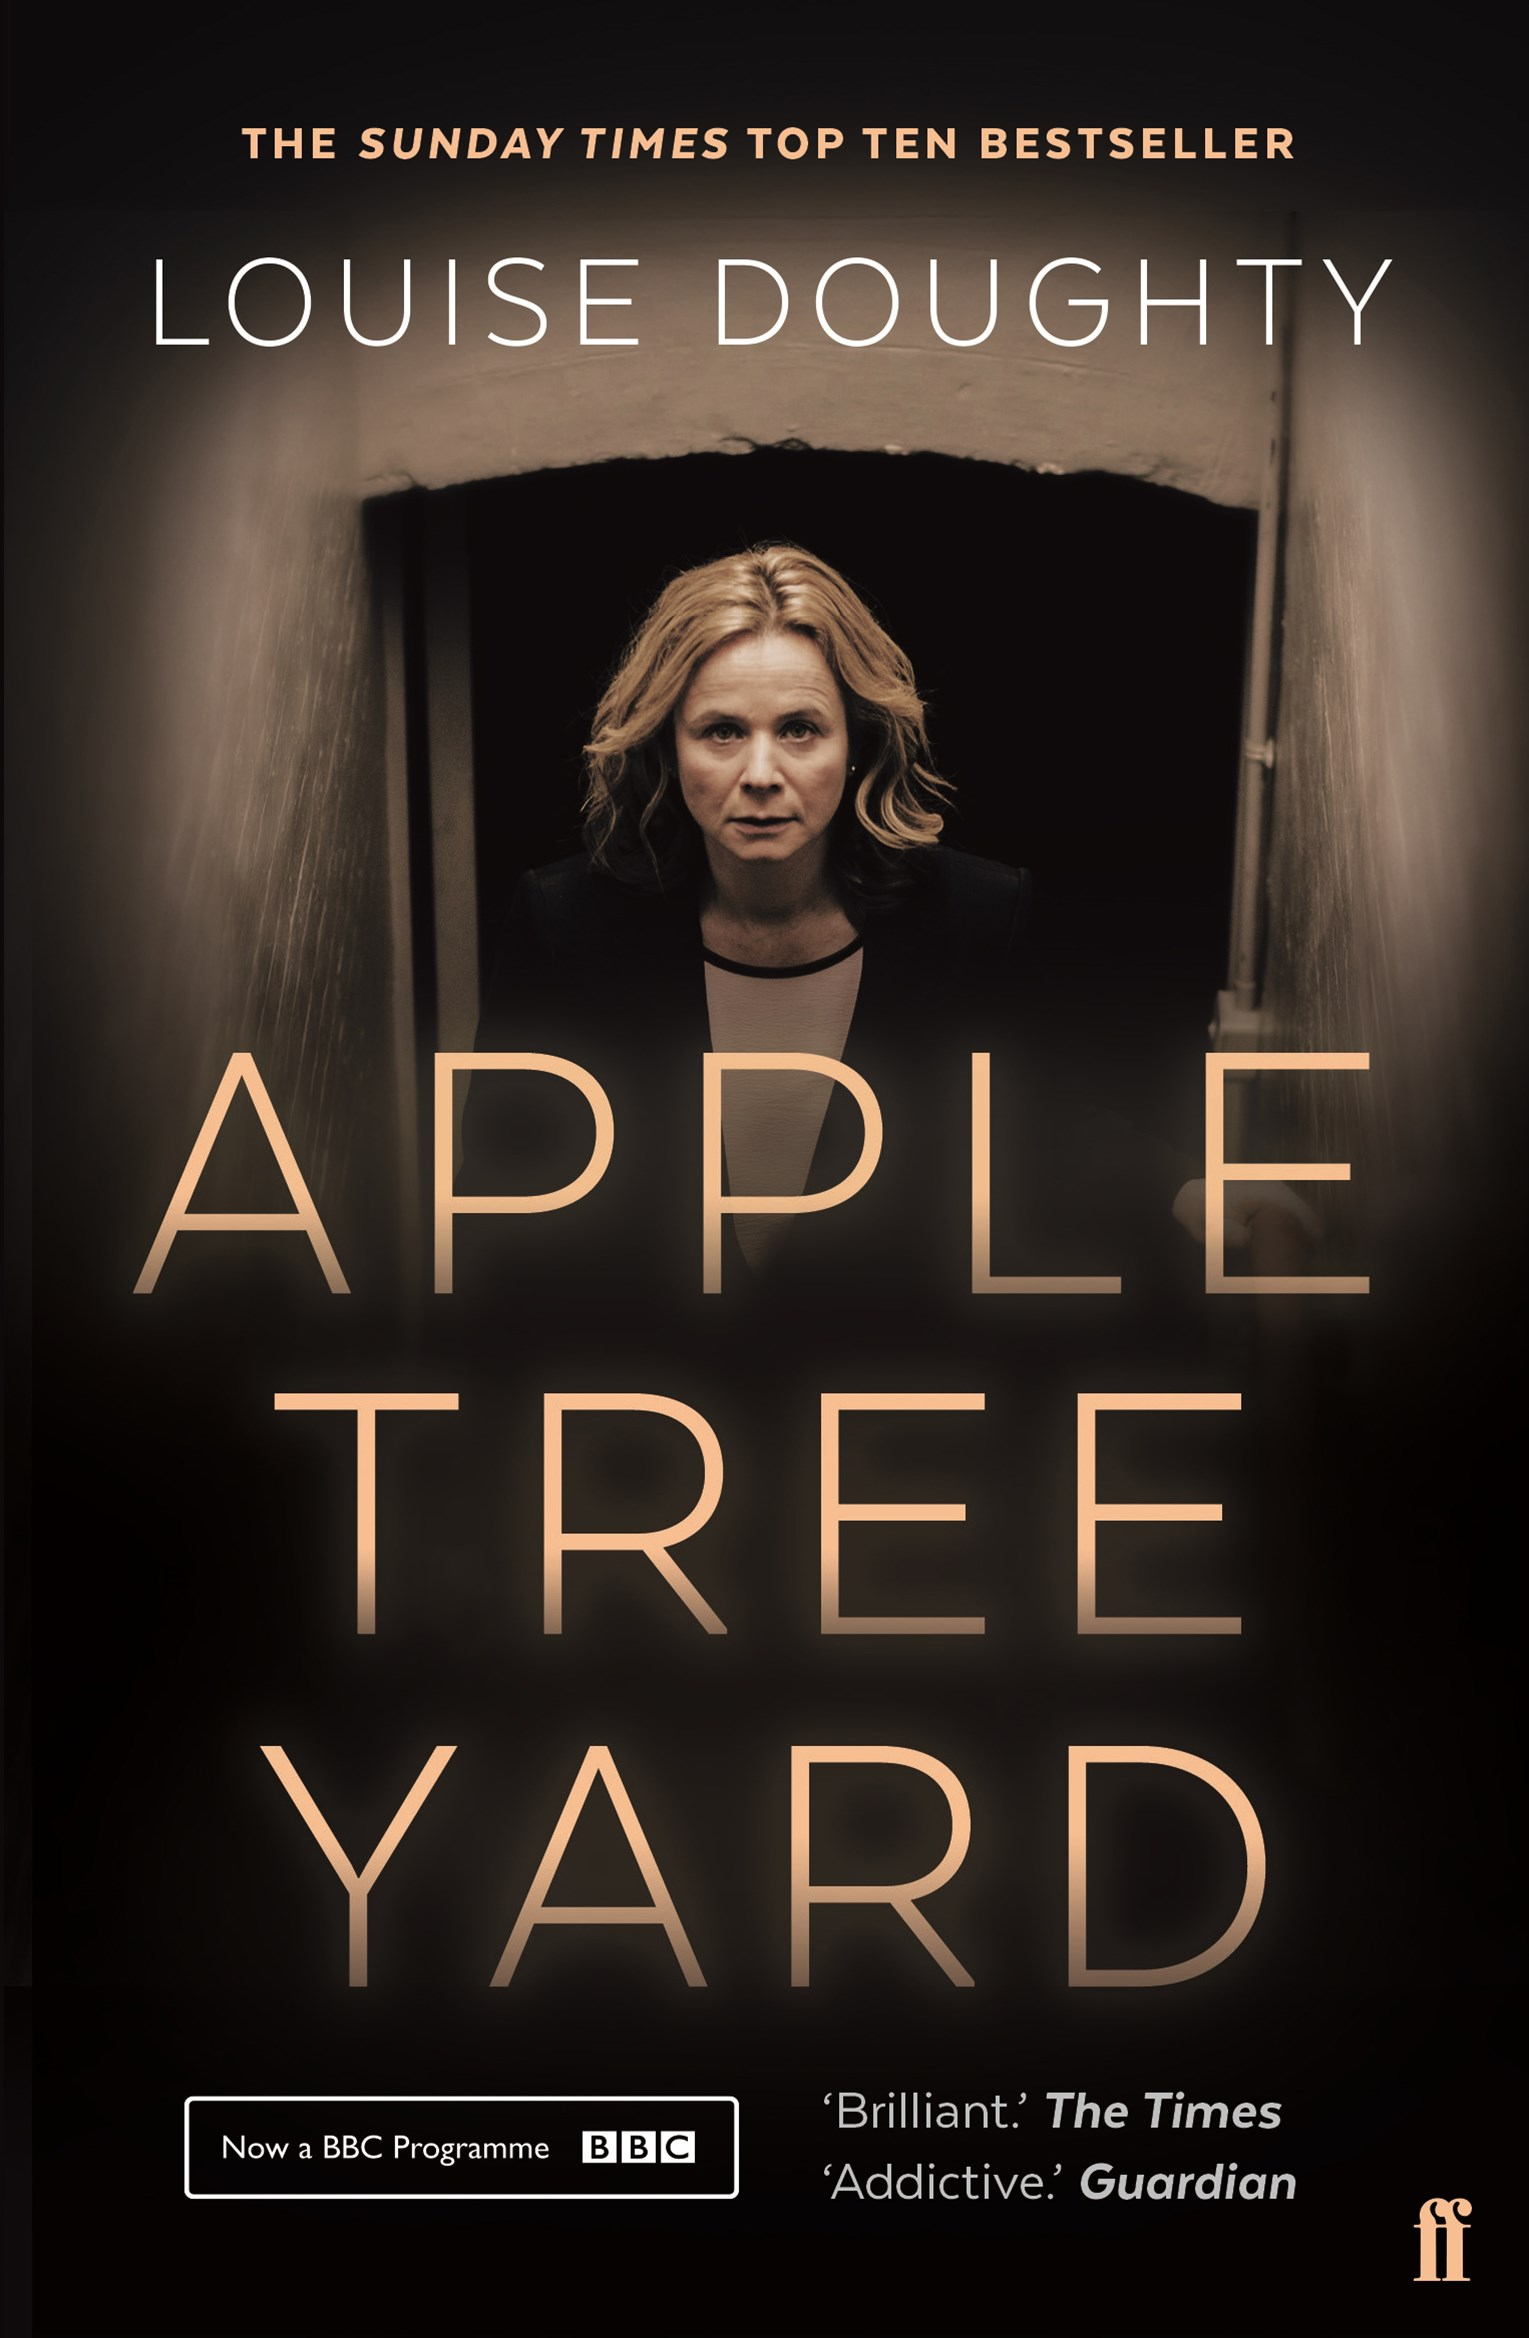 Apple Tree Yard (TV tie-in)